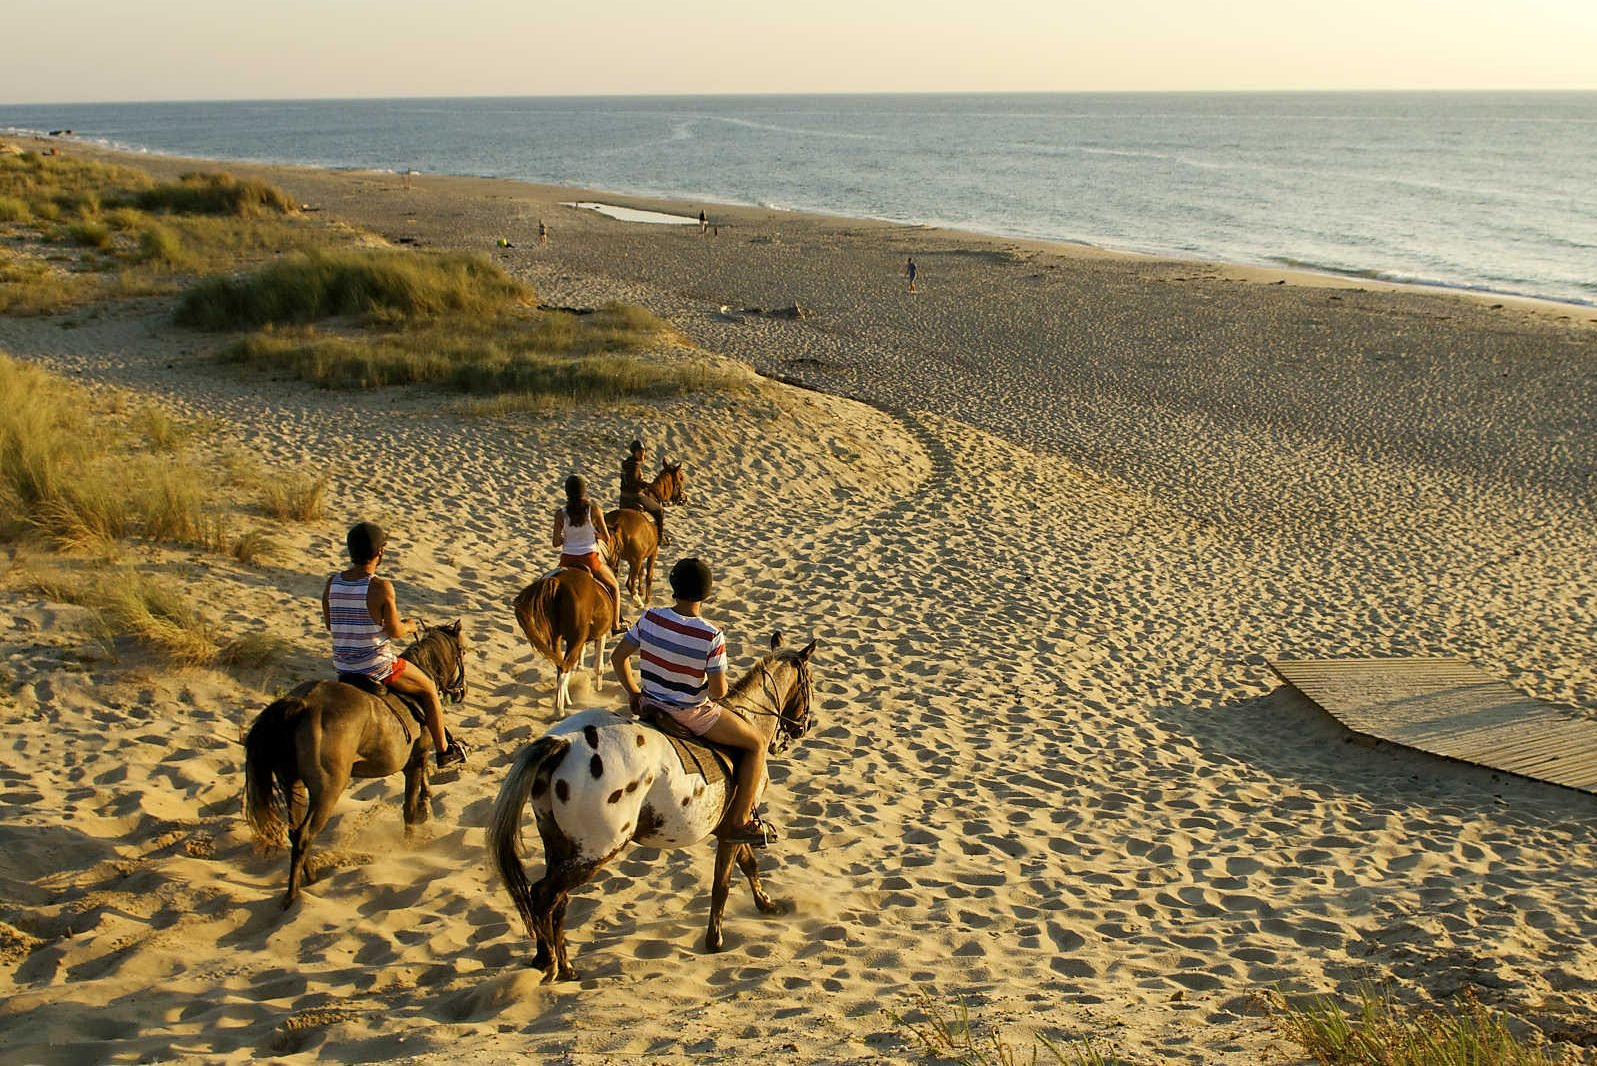 horse riding on sandy beach